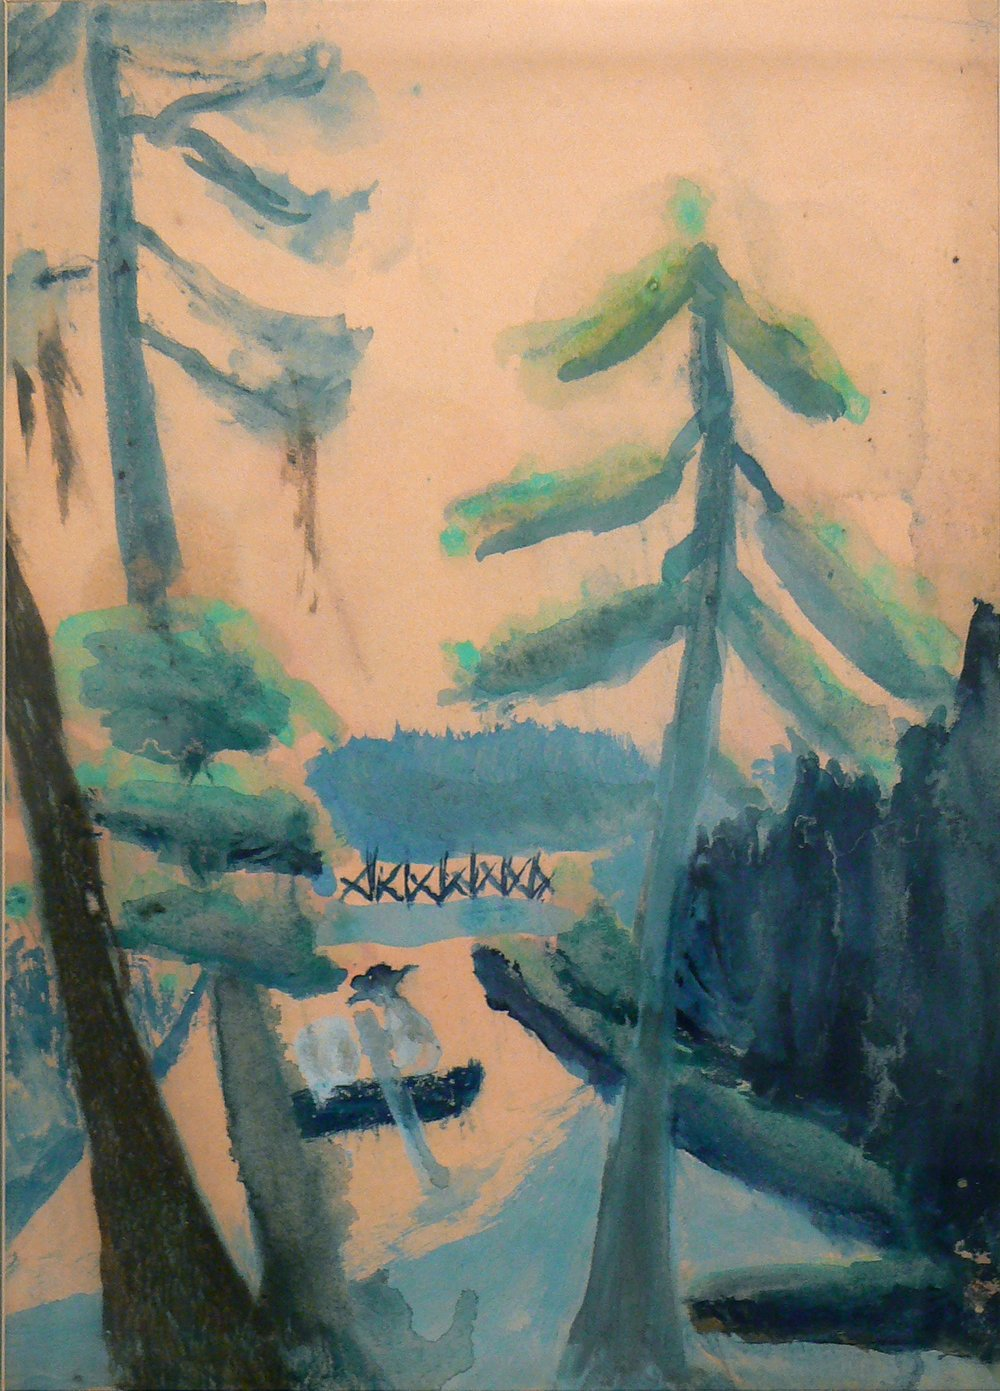 Charles W. Hutson,  Canoe in City Park , c. 1910 – 1920, watercolor on paper, 13.5h x 9.5w in.